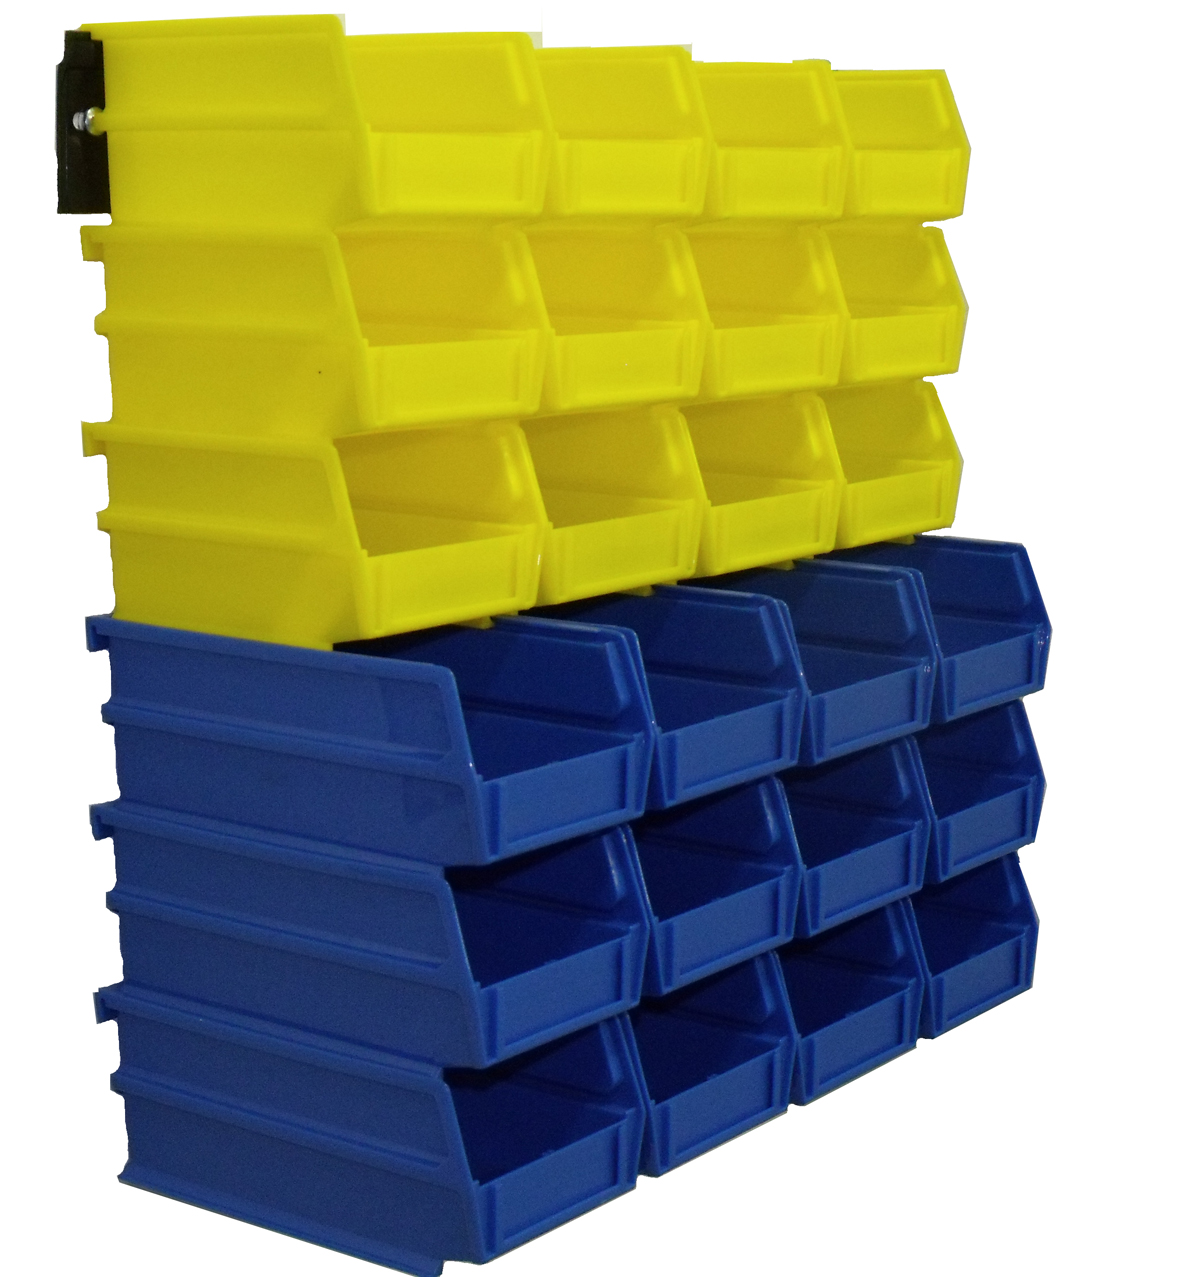 26 Pc Wall Storage Unit with (12) 5-3/8L x 4-1/8W x 3H YEL Bins & (12) 7-3/8L x 4-1/8W x 3H Blue Bins, 24 CT, Wall Mount Rails